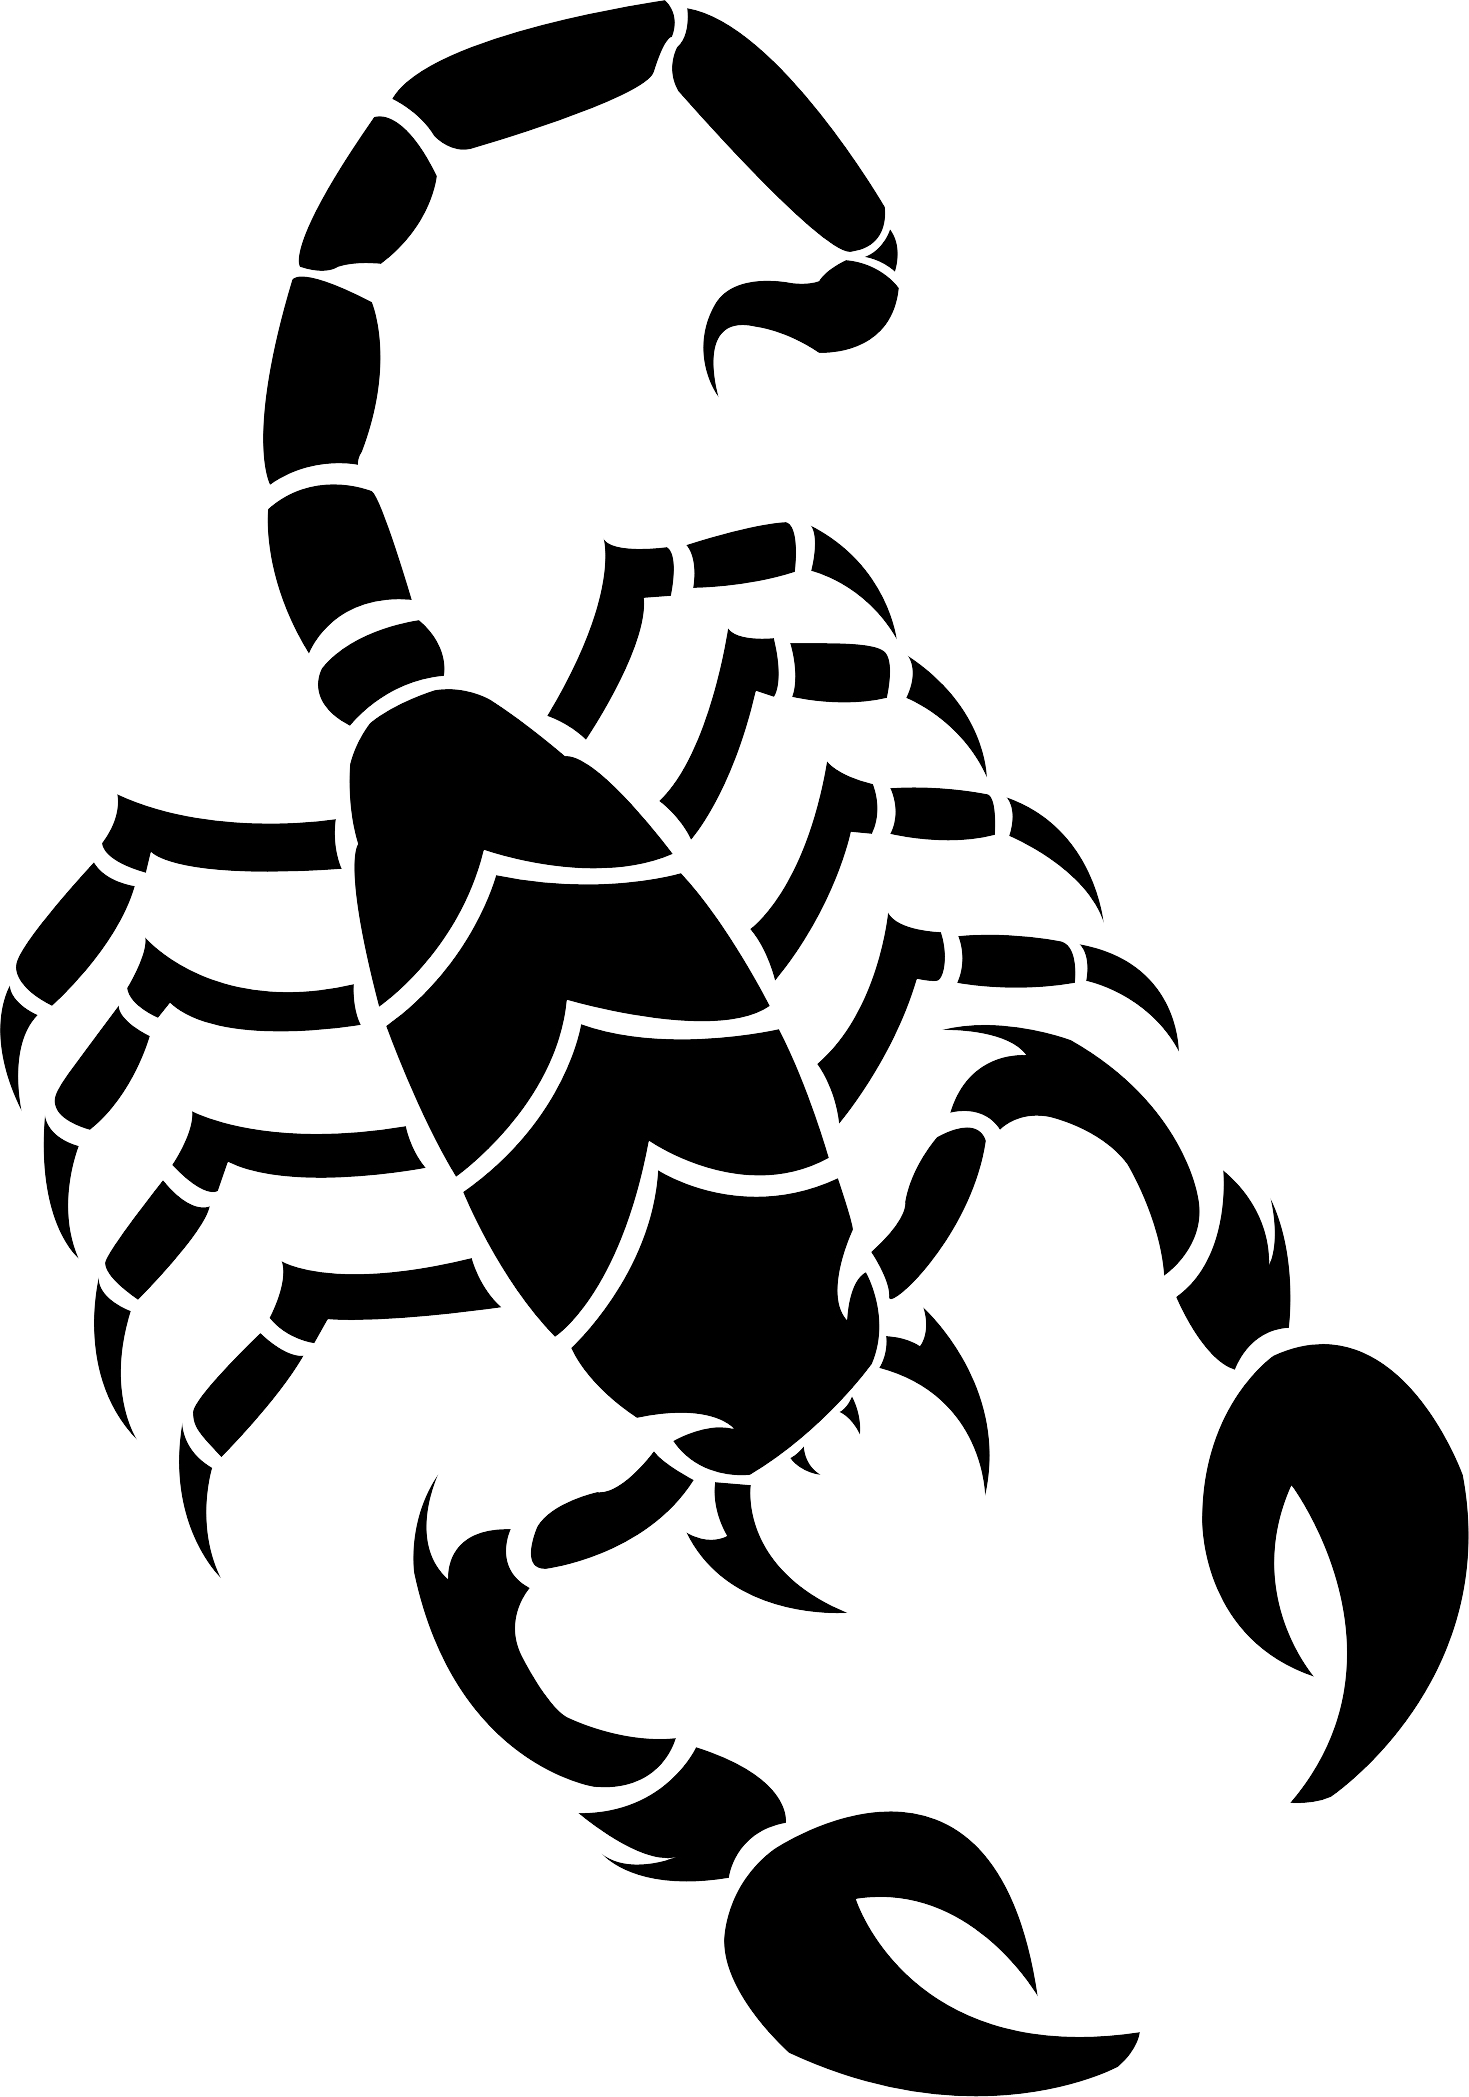 Scorpion tattoo png. Scorpions images silhouette